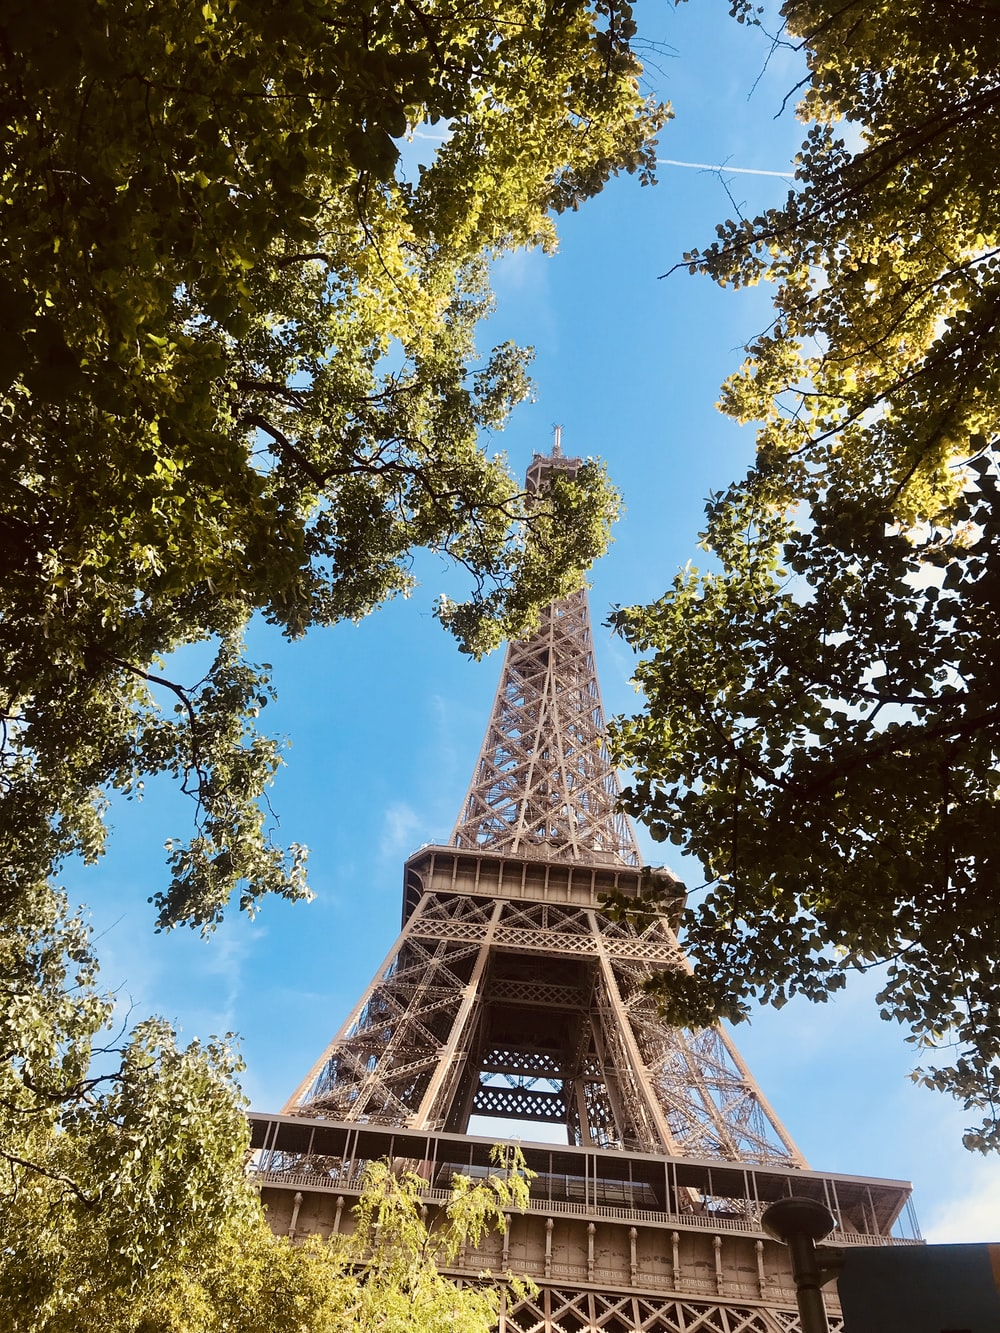 gray Eiffel tower during daytime